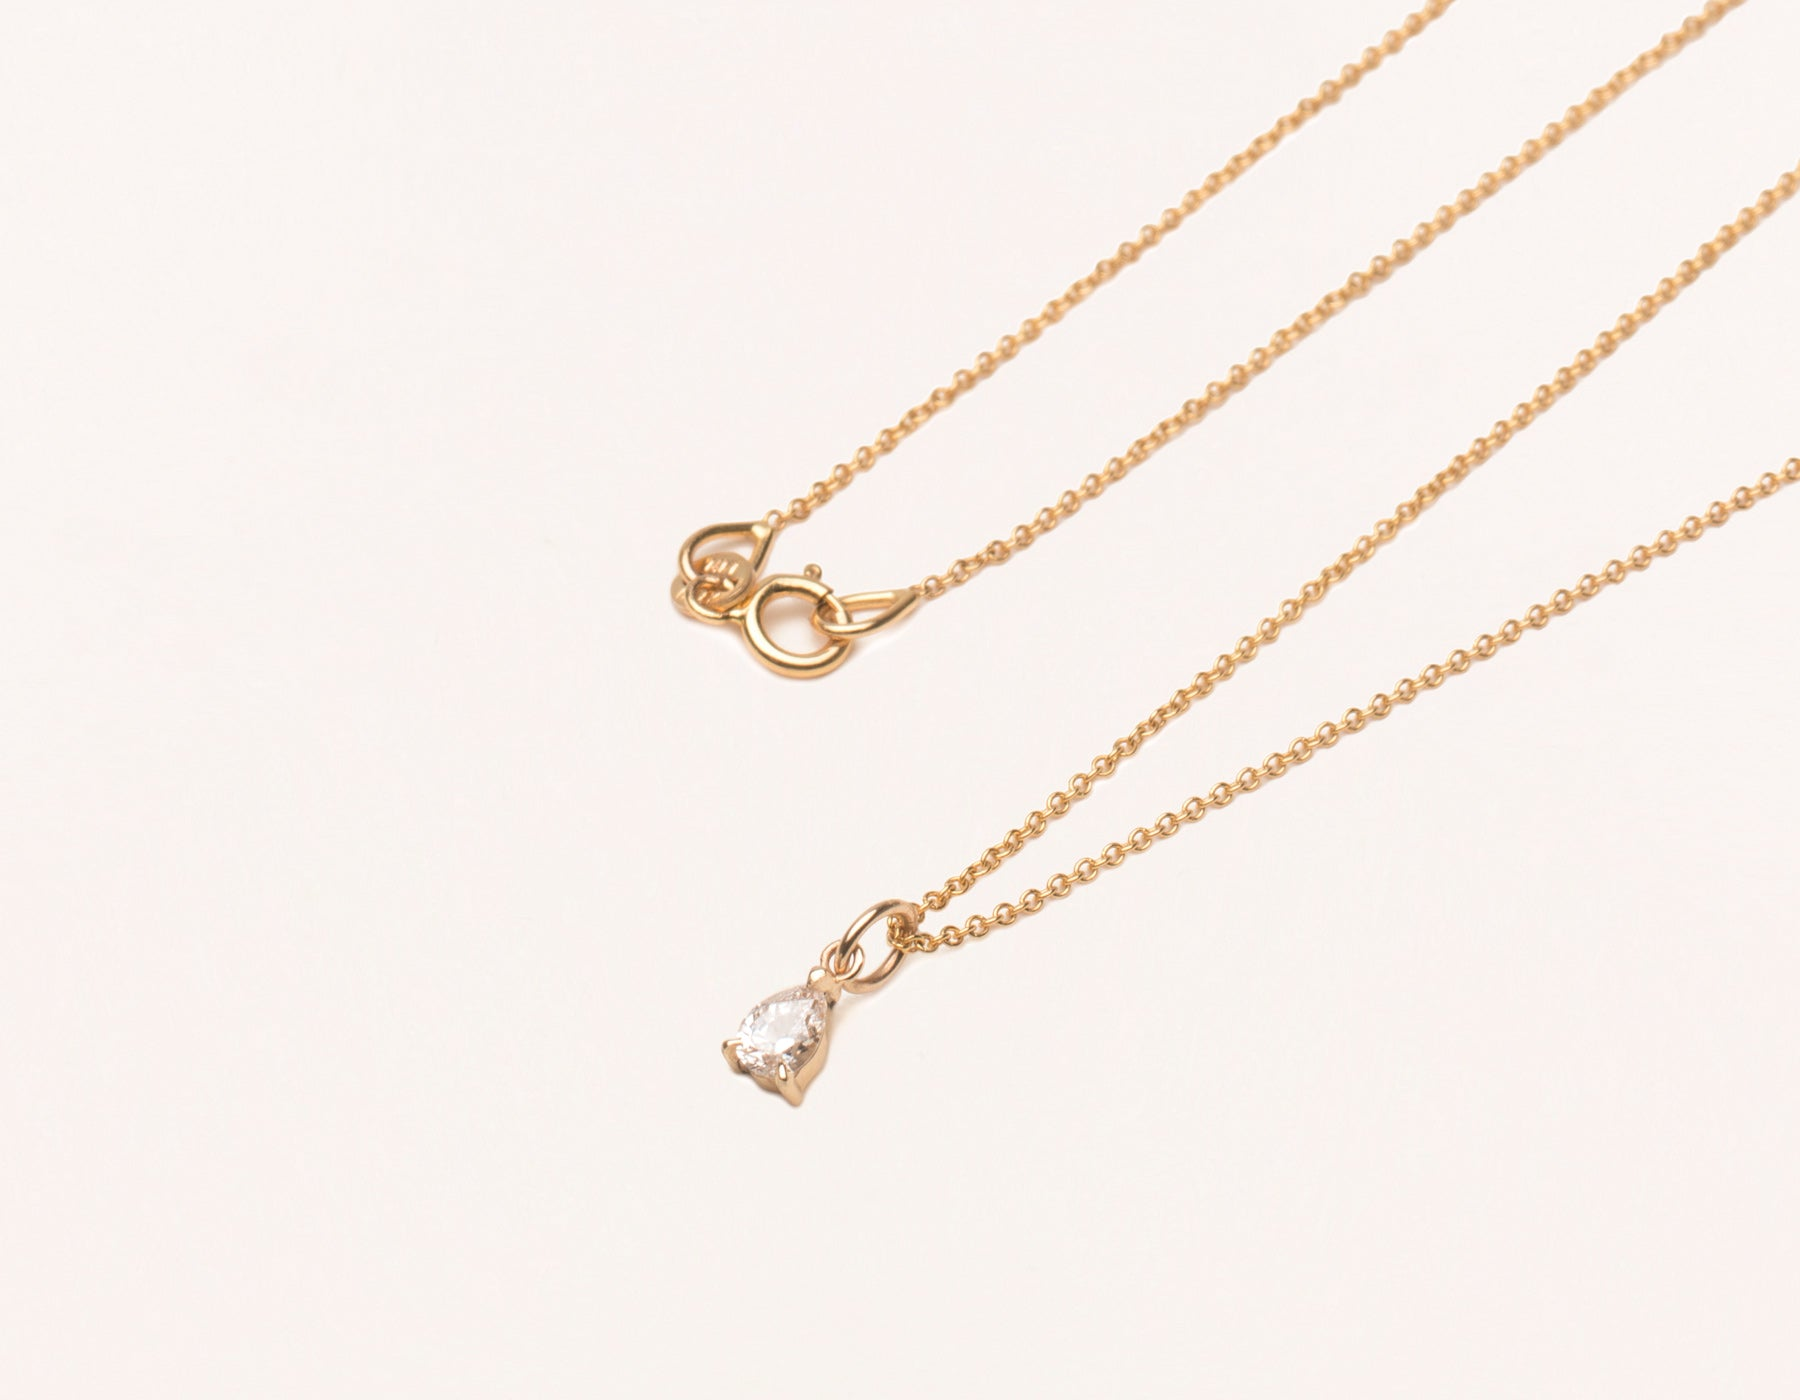 Modern minimalist Pear Diamond Pendant Necklace charm on thin oval link chain 14k yellow gold spring ring clasp Vrai and Oro, 14K Rose Gold